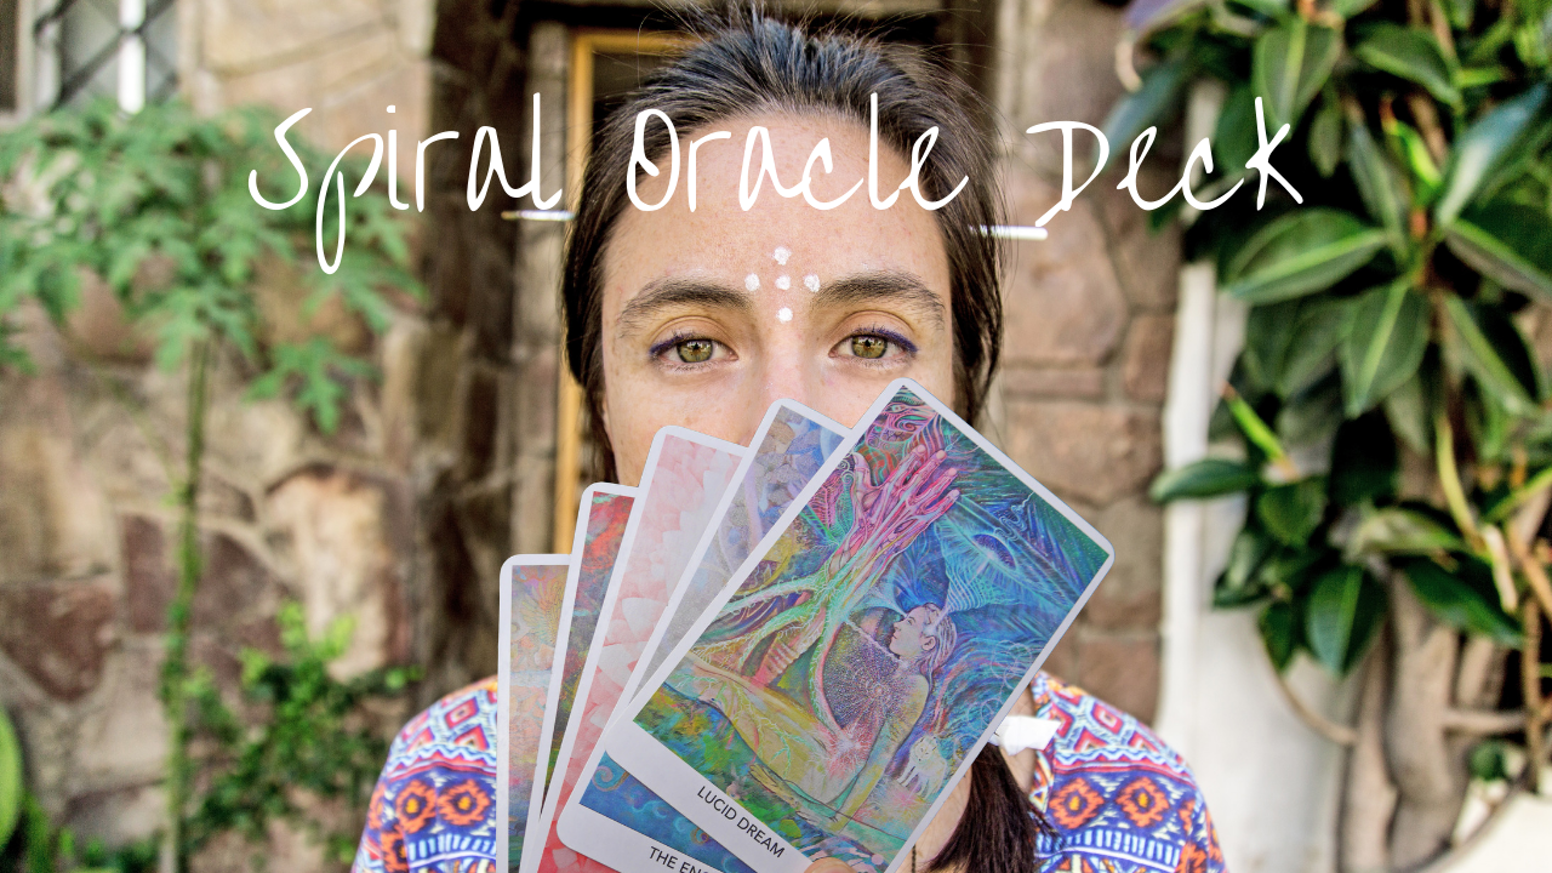 A colourful Oracle Deck featuring original artwork & writings by artist Lili Acuña.